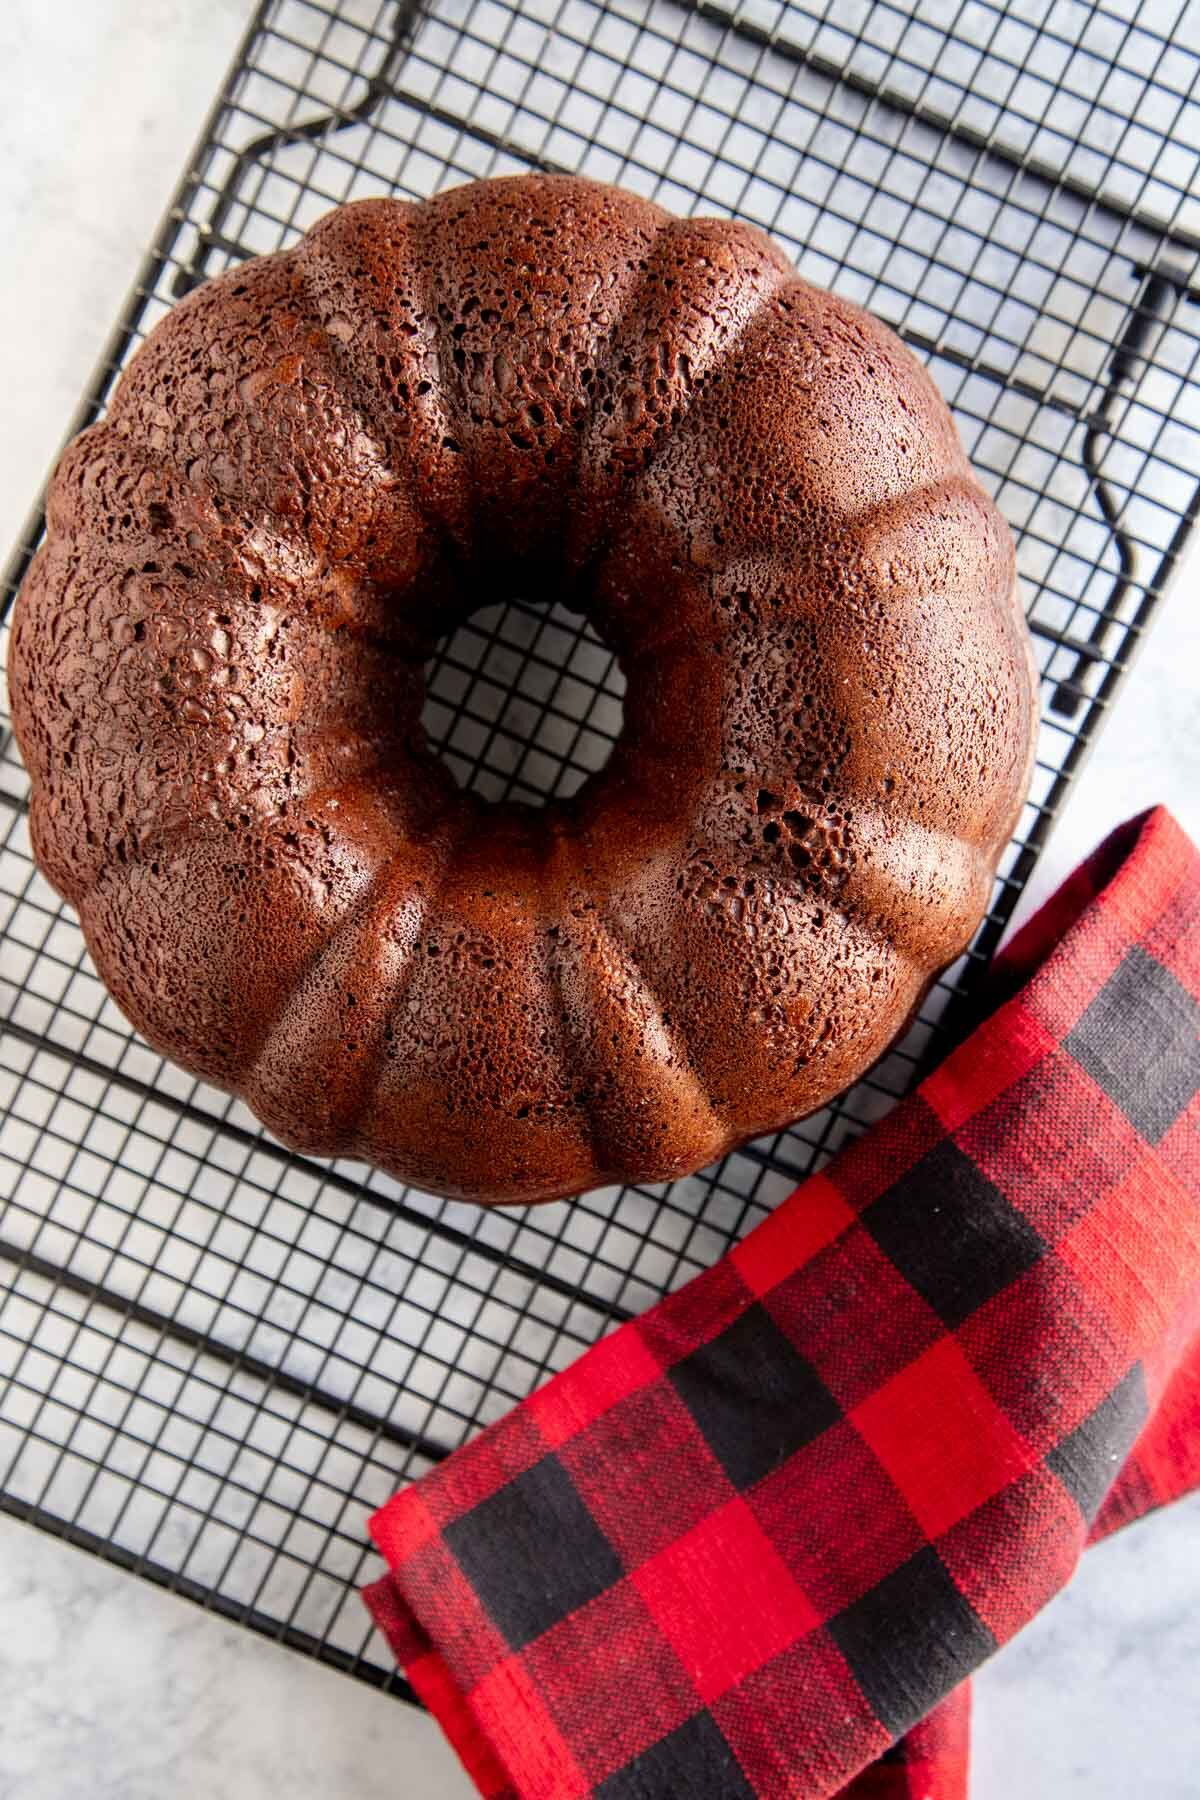 bundt cake out of the oven and on a wire rack